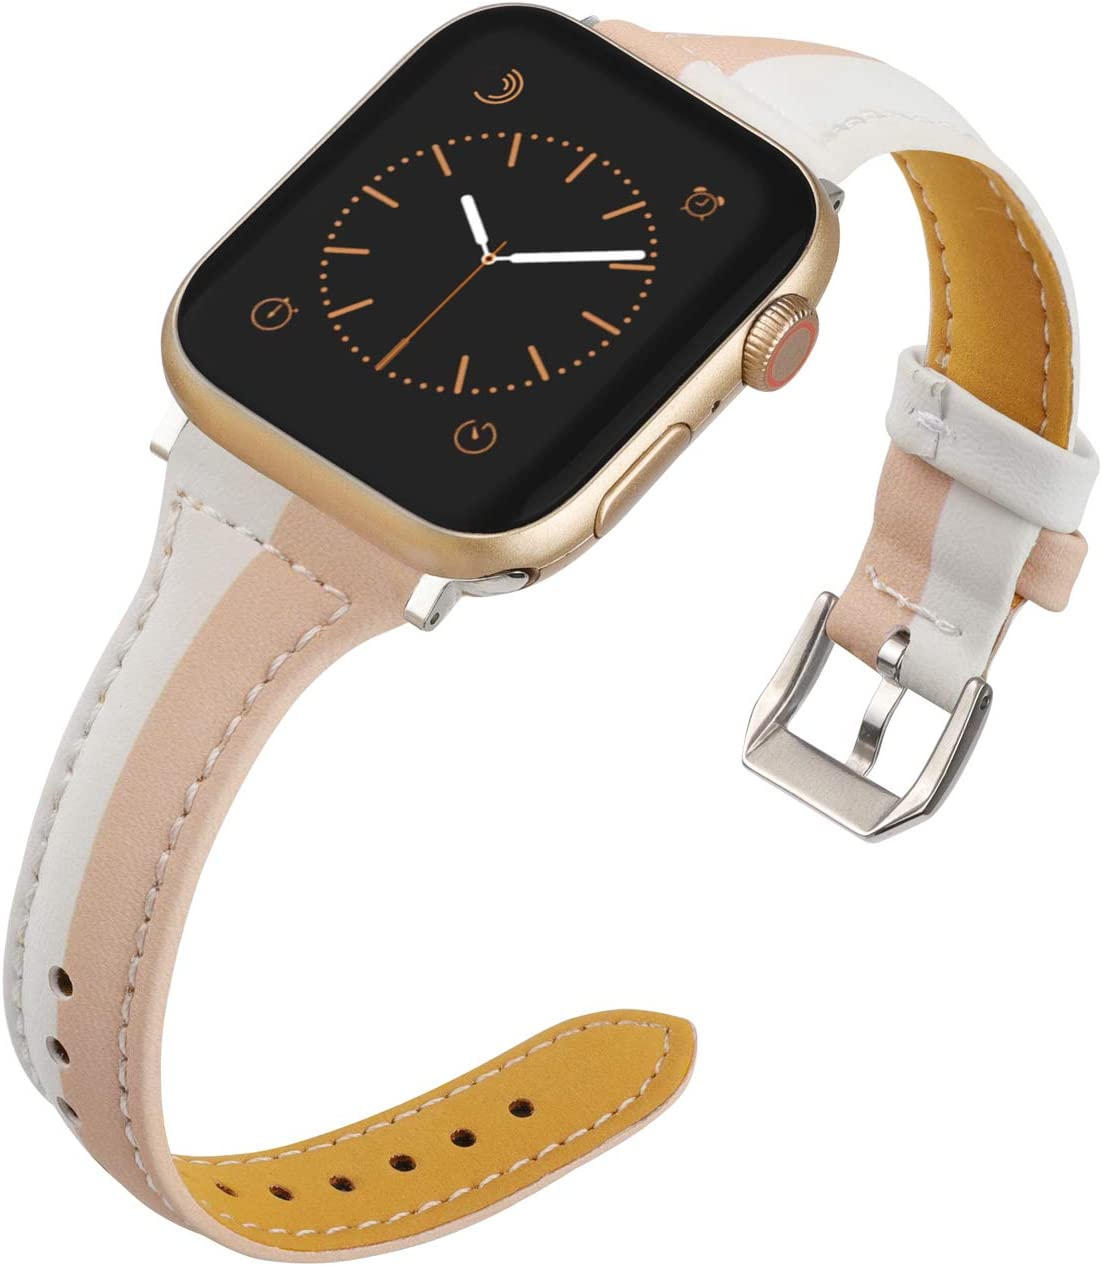 Wearlizer Thin Leather Compatible with Apple Watch Bands 42mm 44mm for iWatch SE Top Grain Strap, Womens Mens Slim Nude White Leisure Cute Two-Tone Wristband (Silver Clasp) Series 6 5 4 3 2 1 Sport